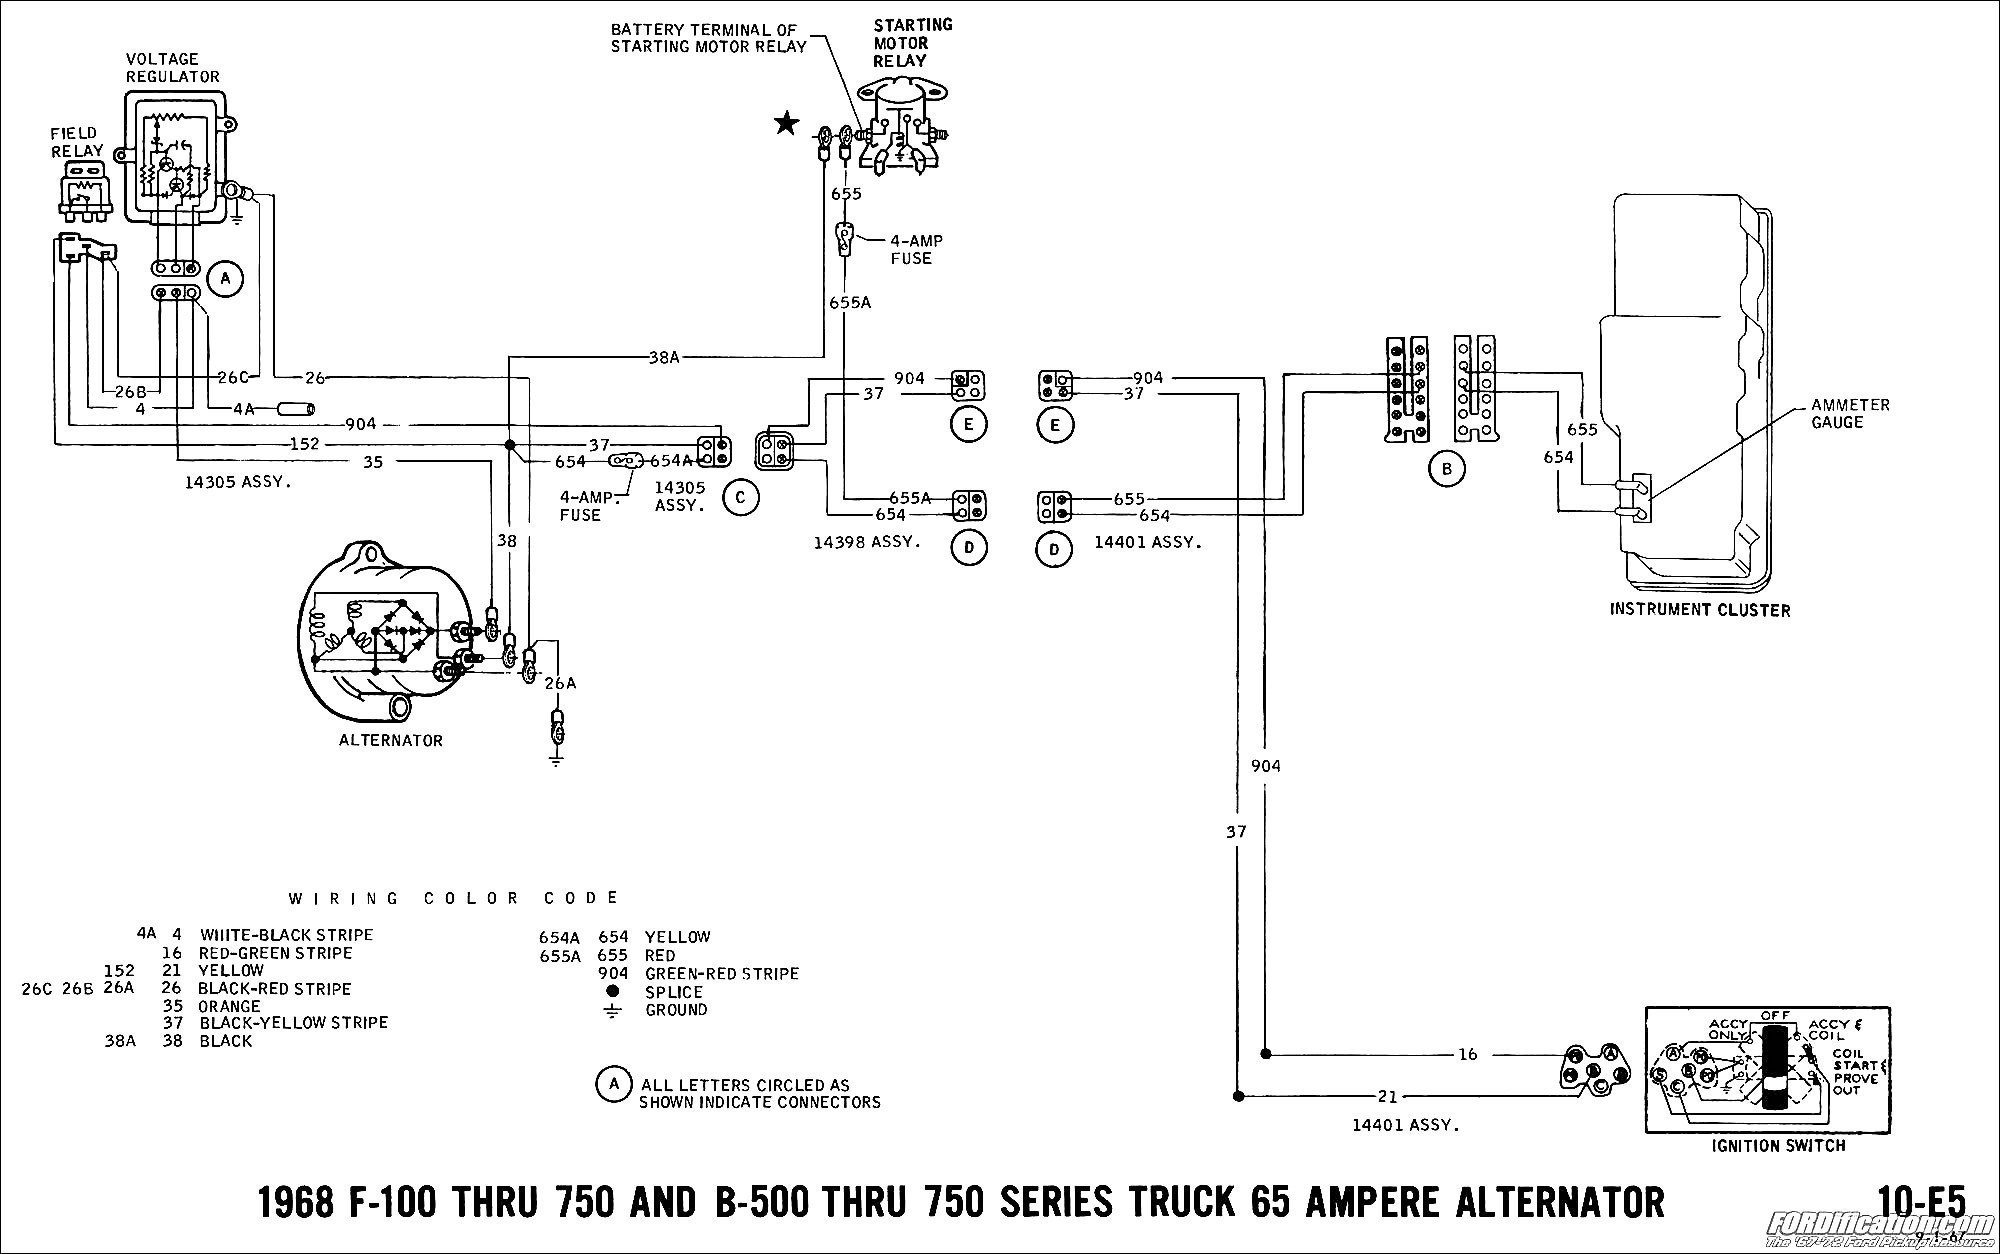 Tractor Alternator Wiring Diagram from static-cdn.imageservice.cloud